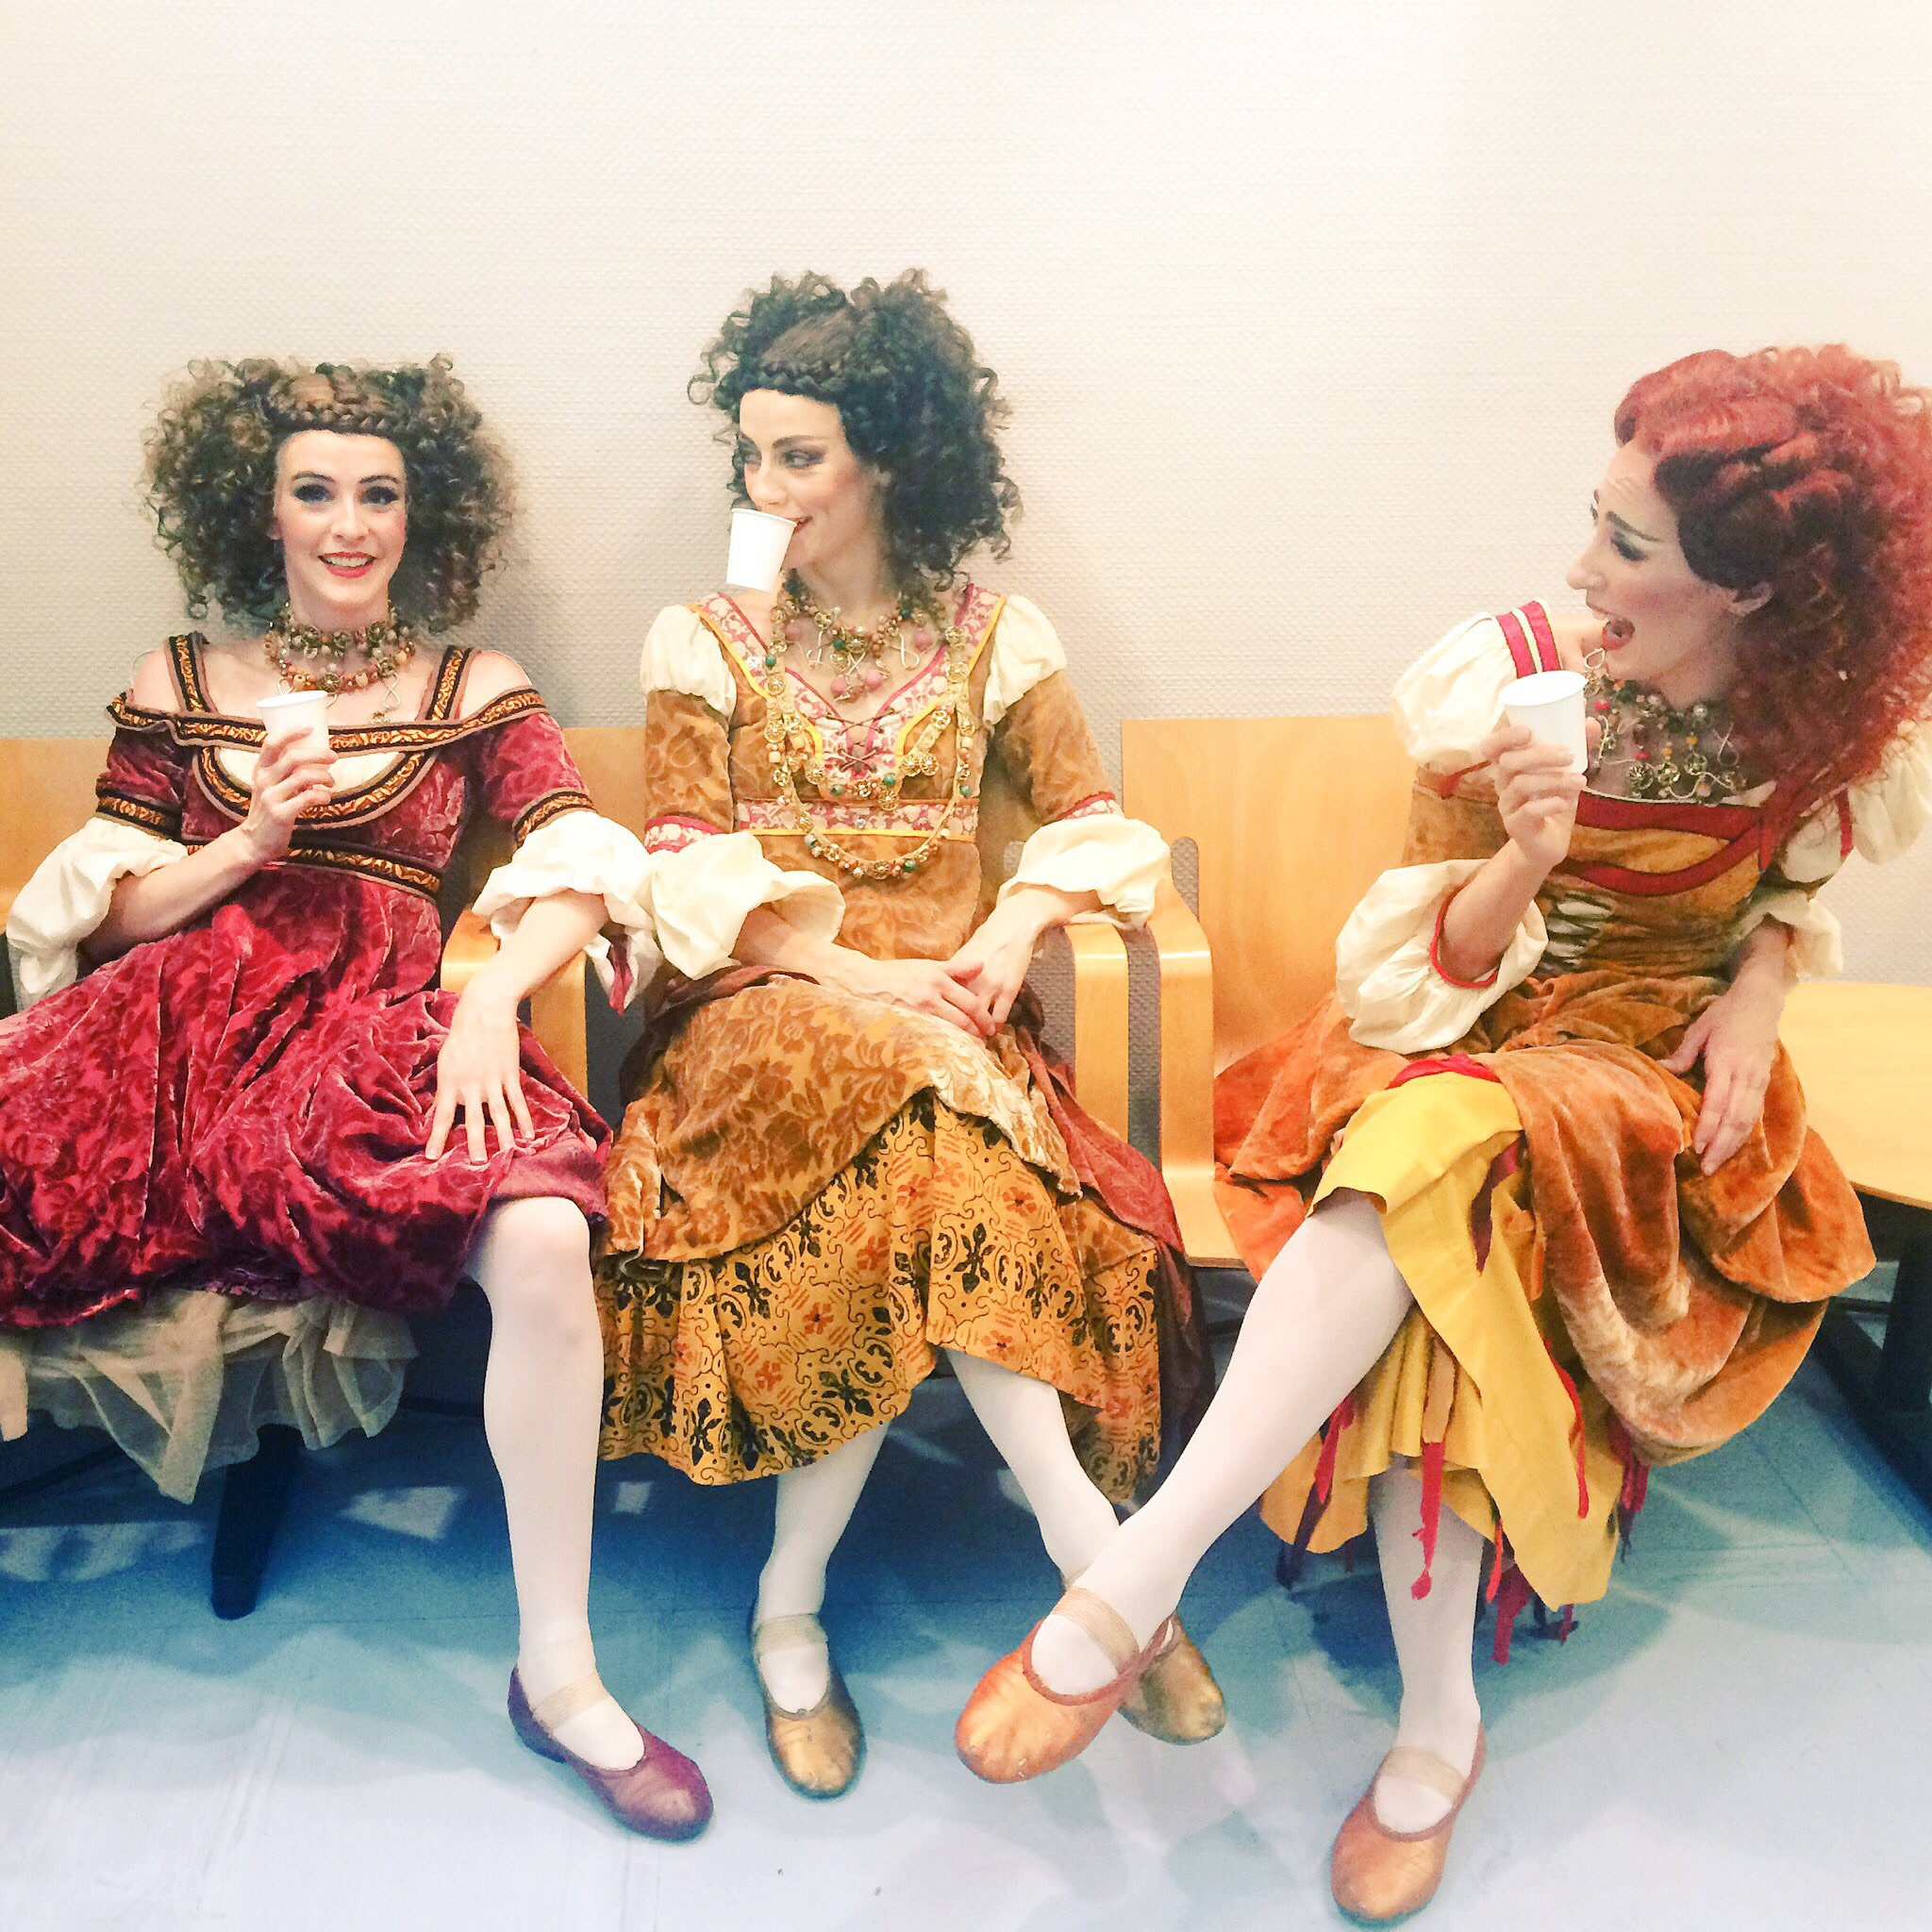 Myself, Helen and Itzi hydrating after a show of Harlots in Romeo and Juliet!